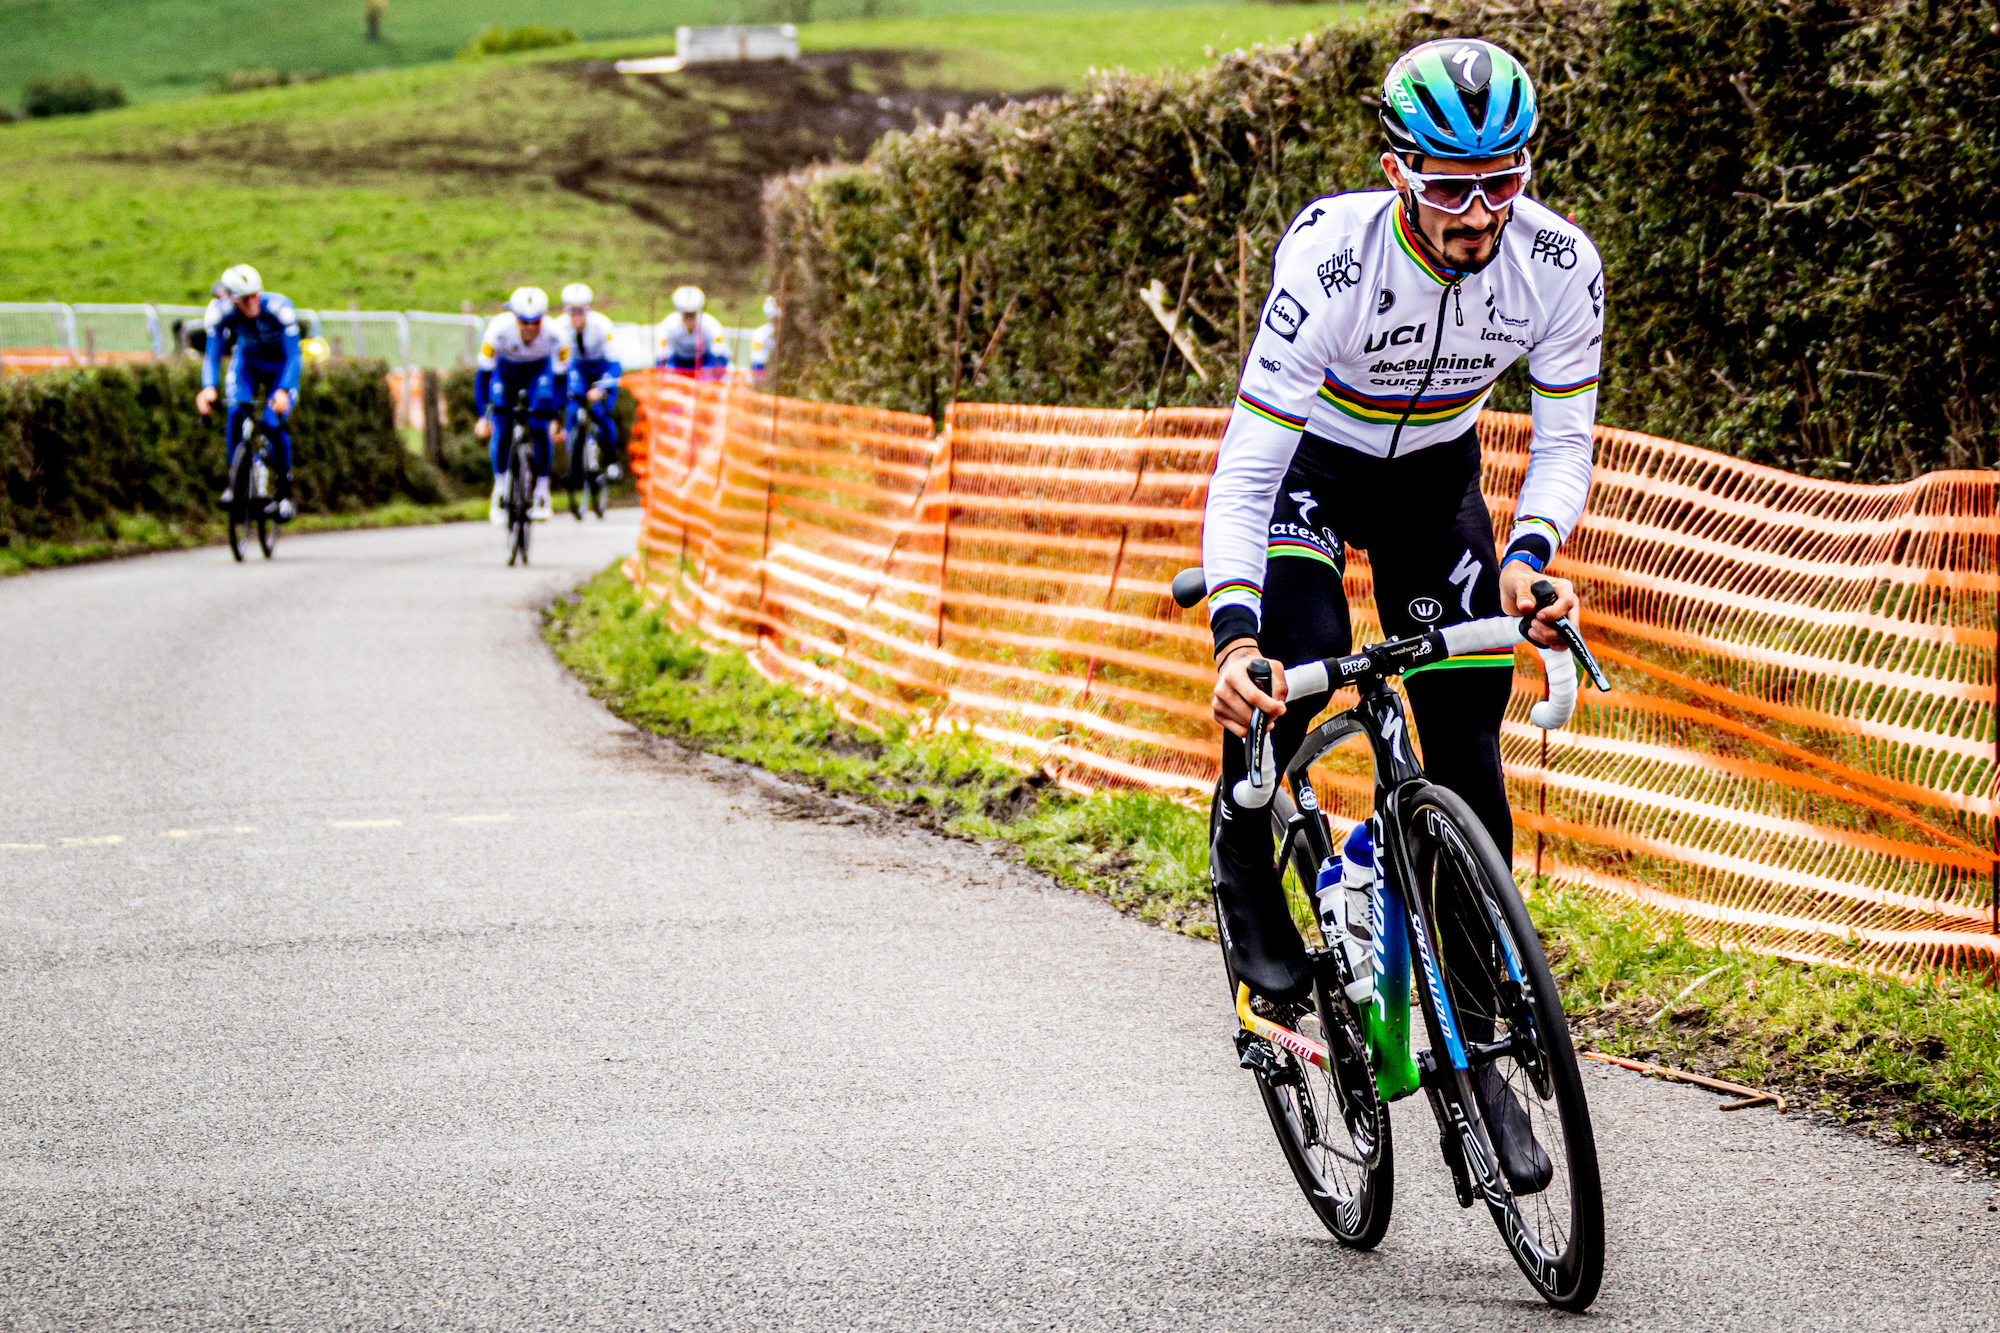 Julian Alaphilippe unveils rainbow jersey and custom Specialized Tarmac SL7 ahead of Liège-Bastogne-Liège 2020 - Cycling Weekly